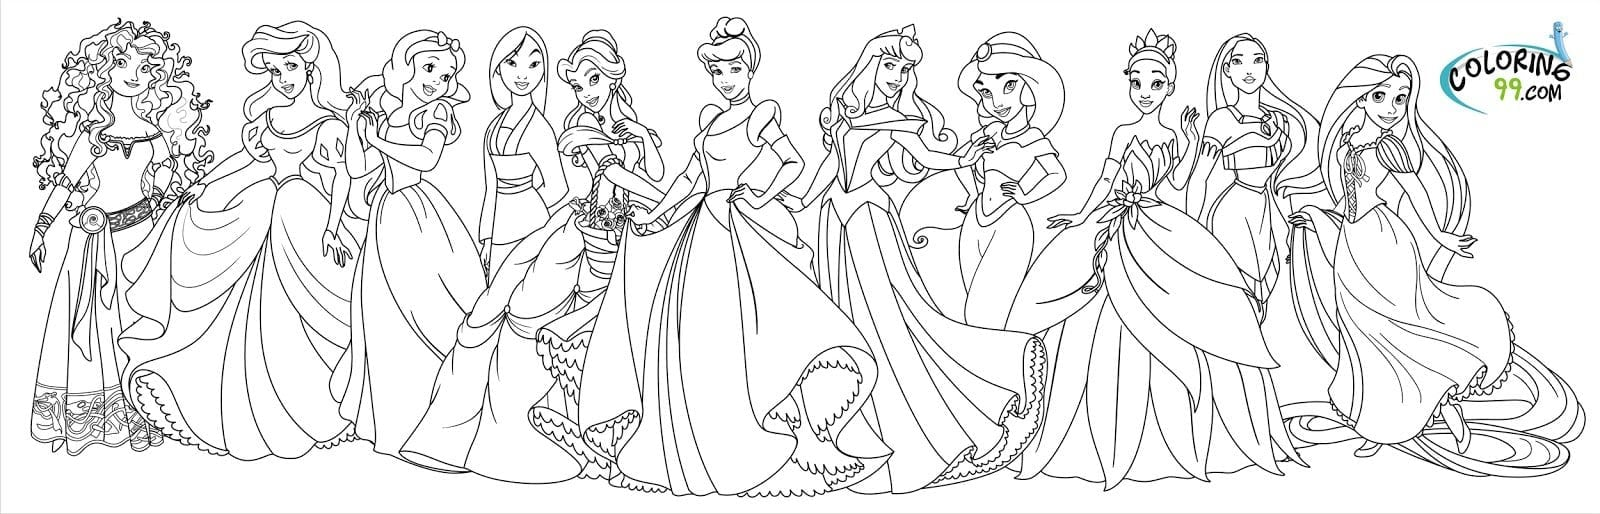 Disney Princesses Coloring Page Princess Colouring Pages Beauty